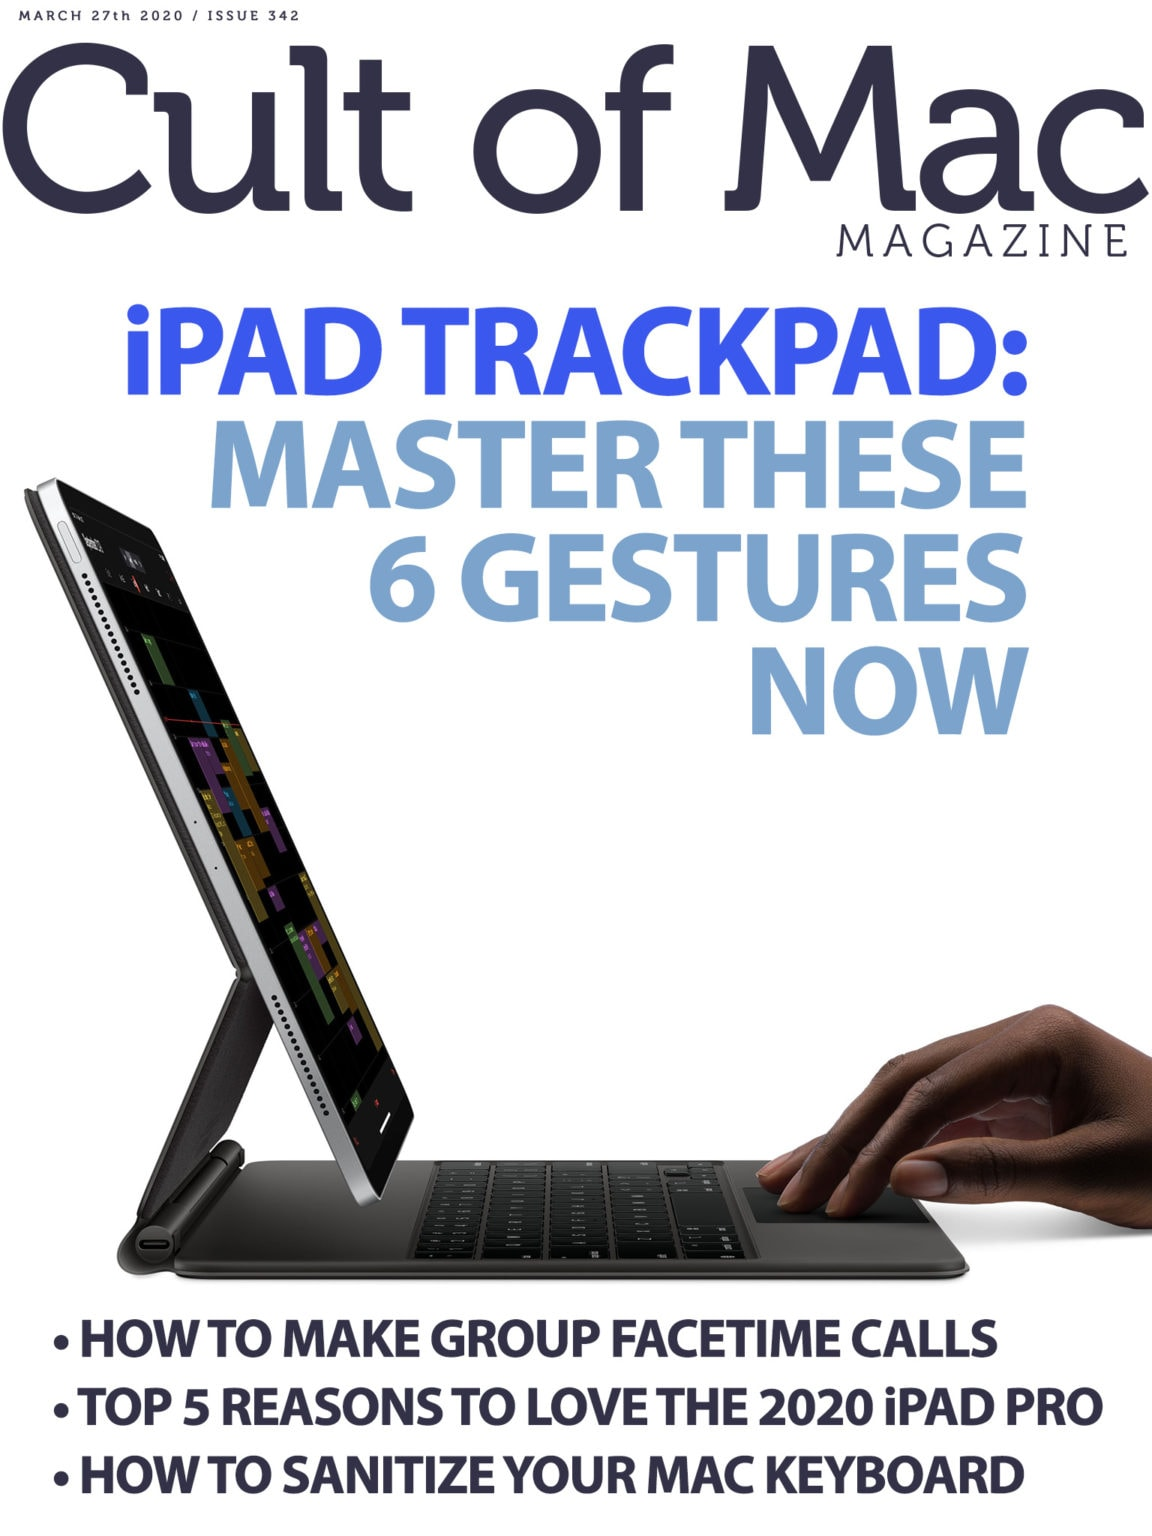 Master these 6 iPad trackpad gestures now.